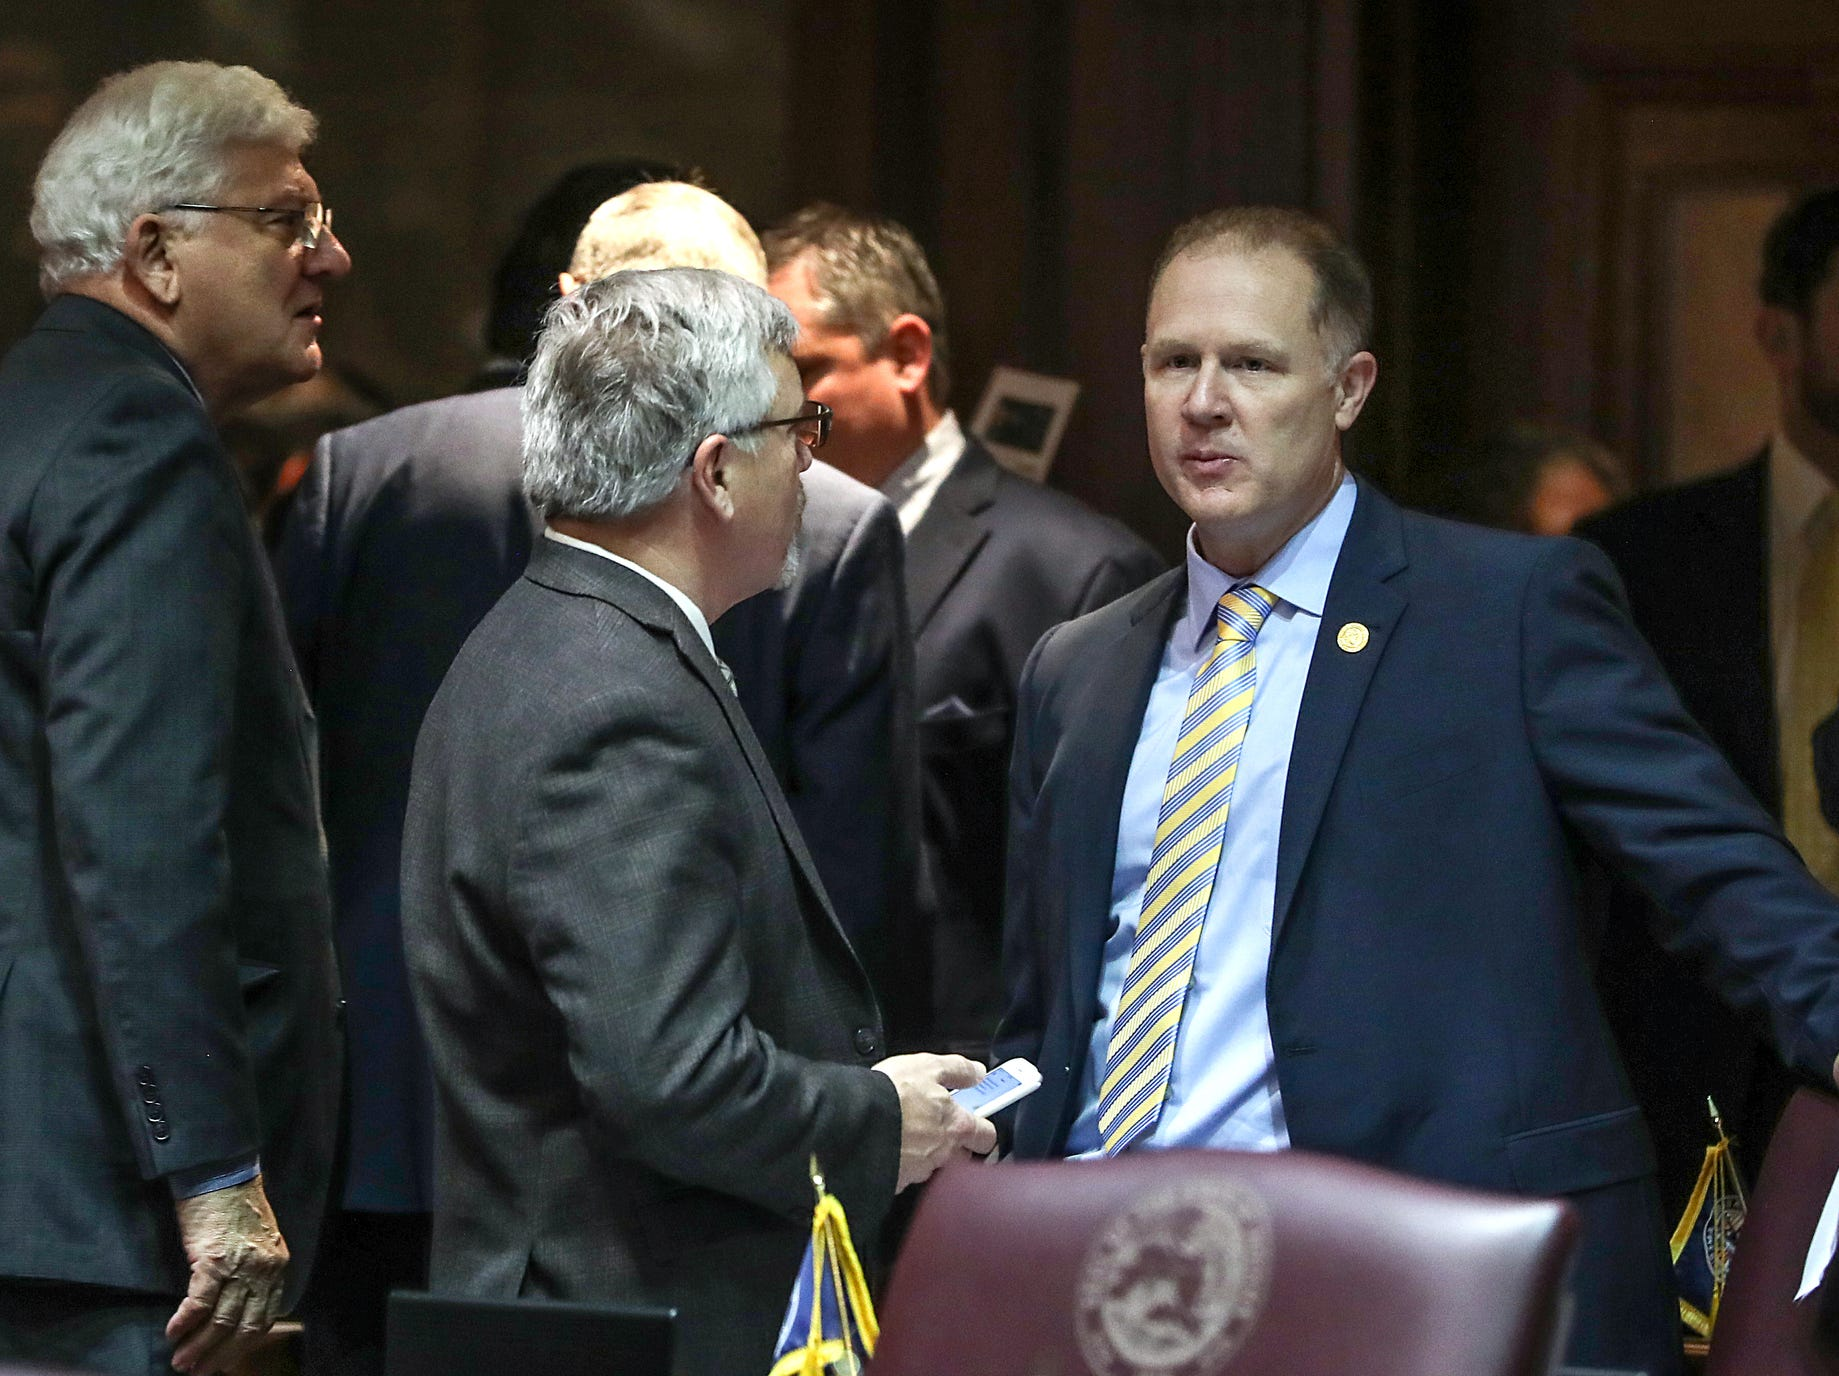 At right, Rep. Chris May talks with colleagues on the starting day of legislative session at the Indiana Statehouse, Indianapolis, Thursday, Jan. 3, 2019.